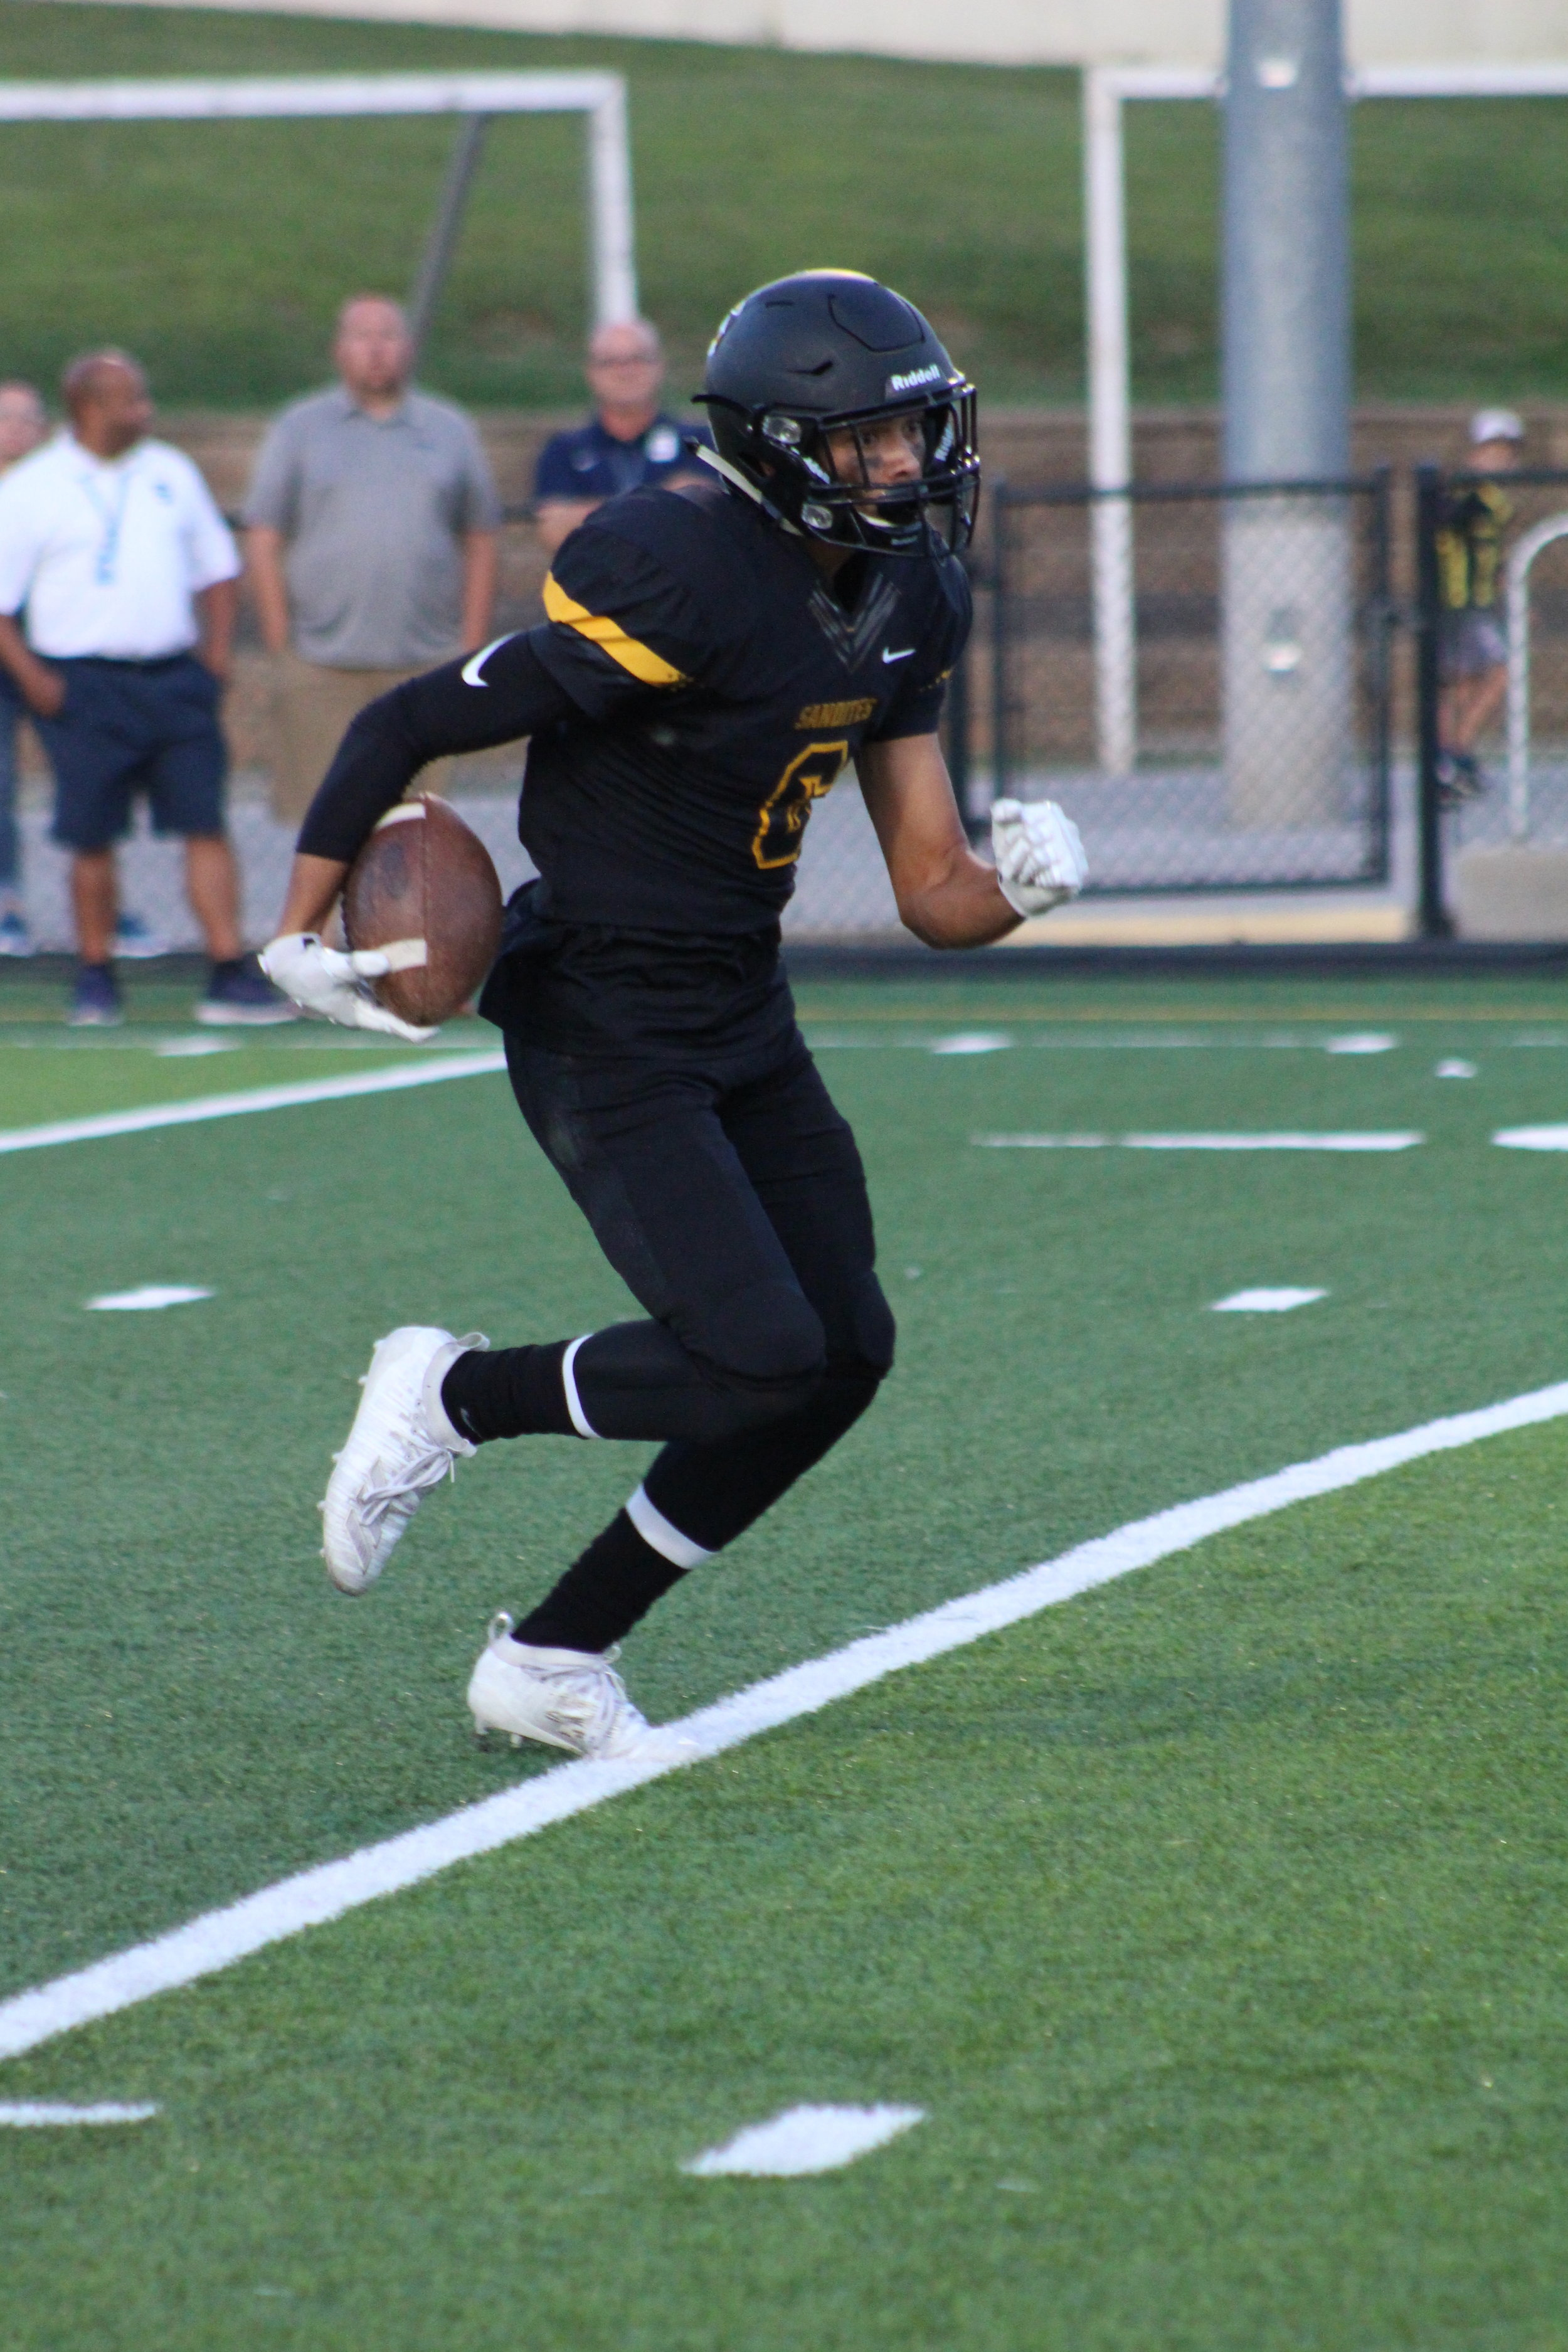 """6'1"""" sophomore Keaton Campbell was 3-28 receiving, 1-8 on punt return, and 2-50 on kick returns Friday against Shawnee."""